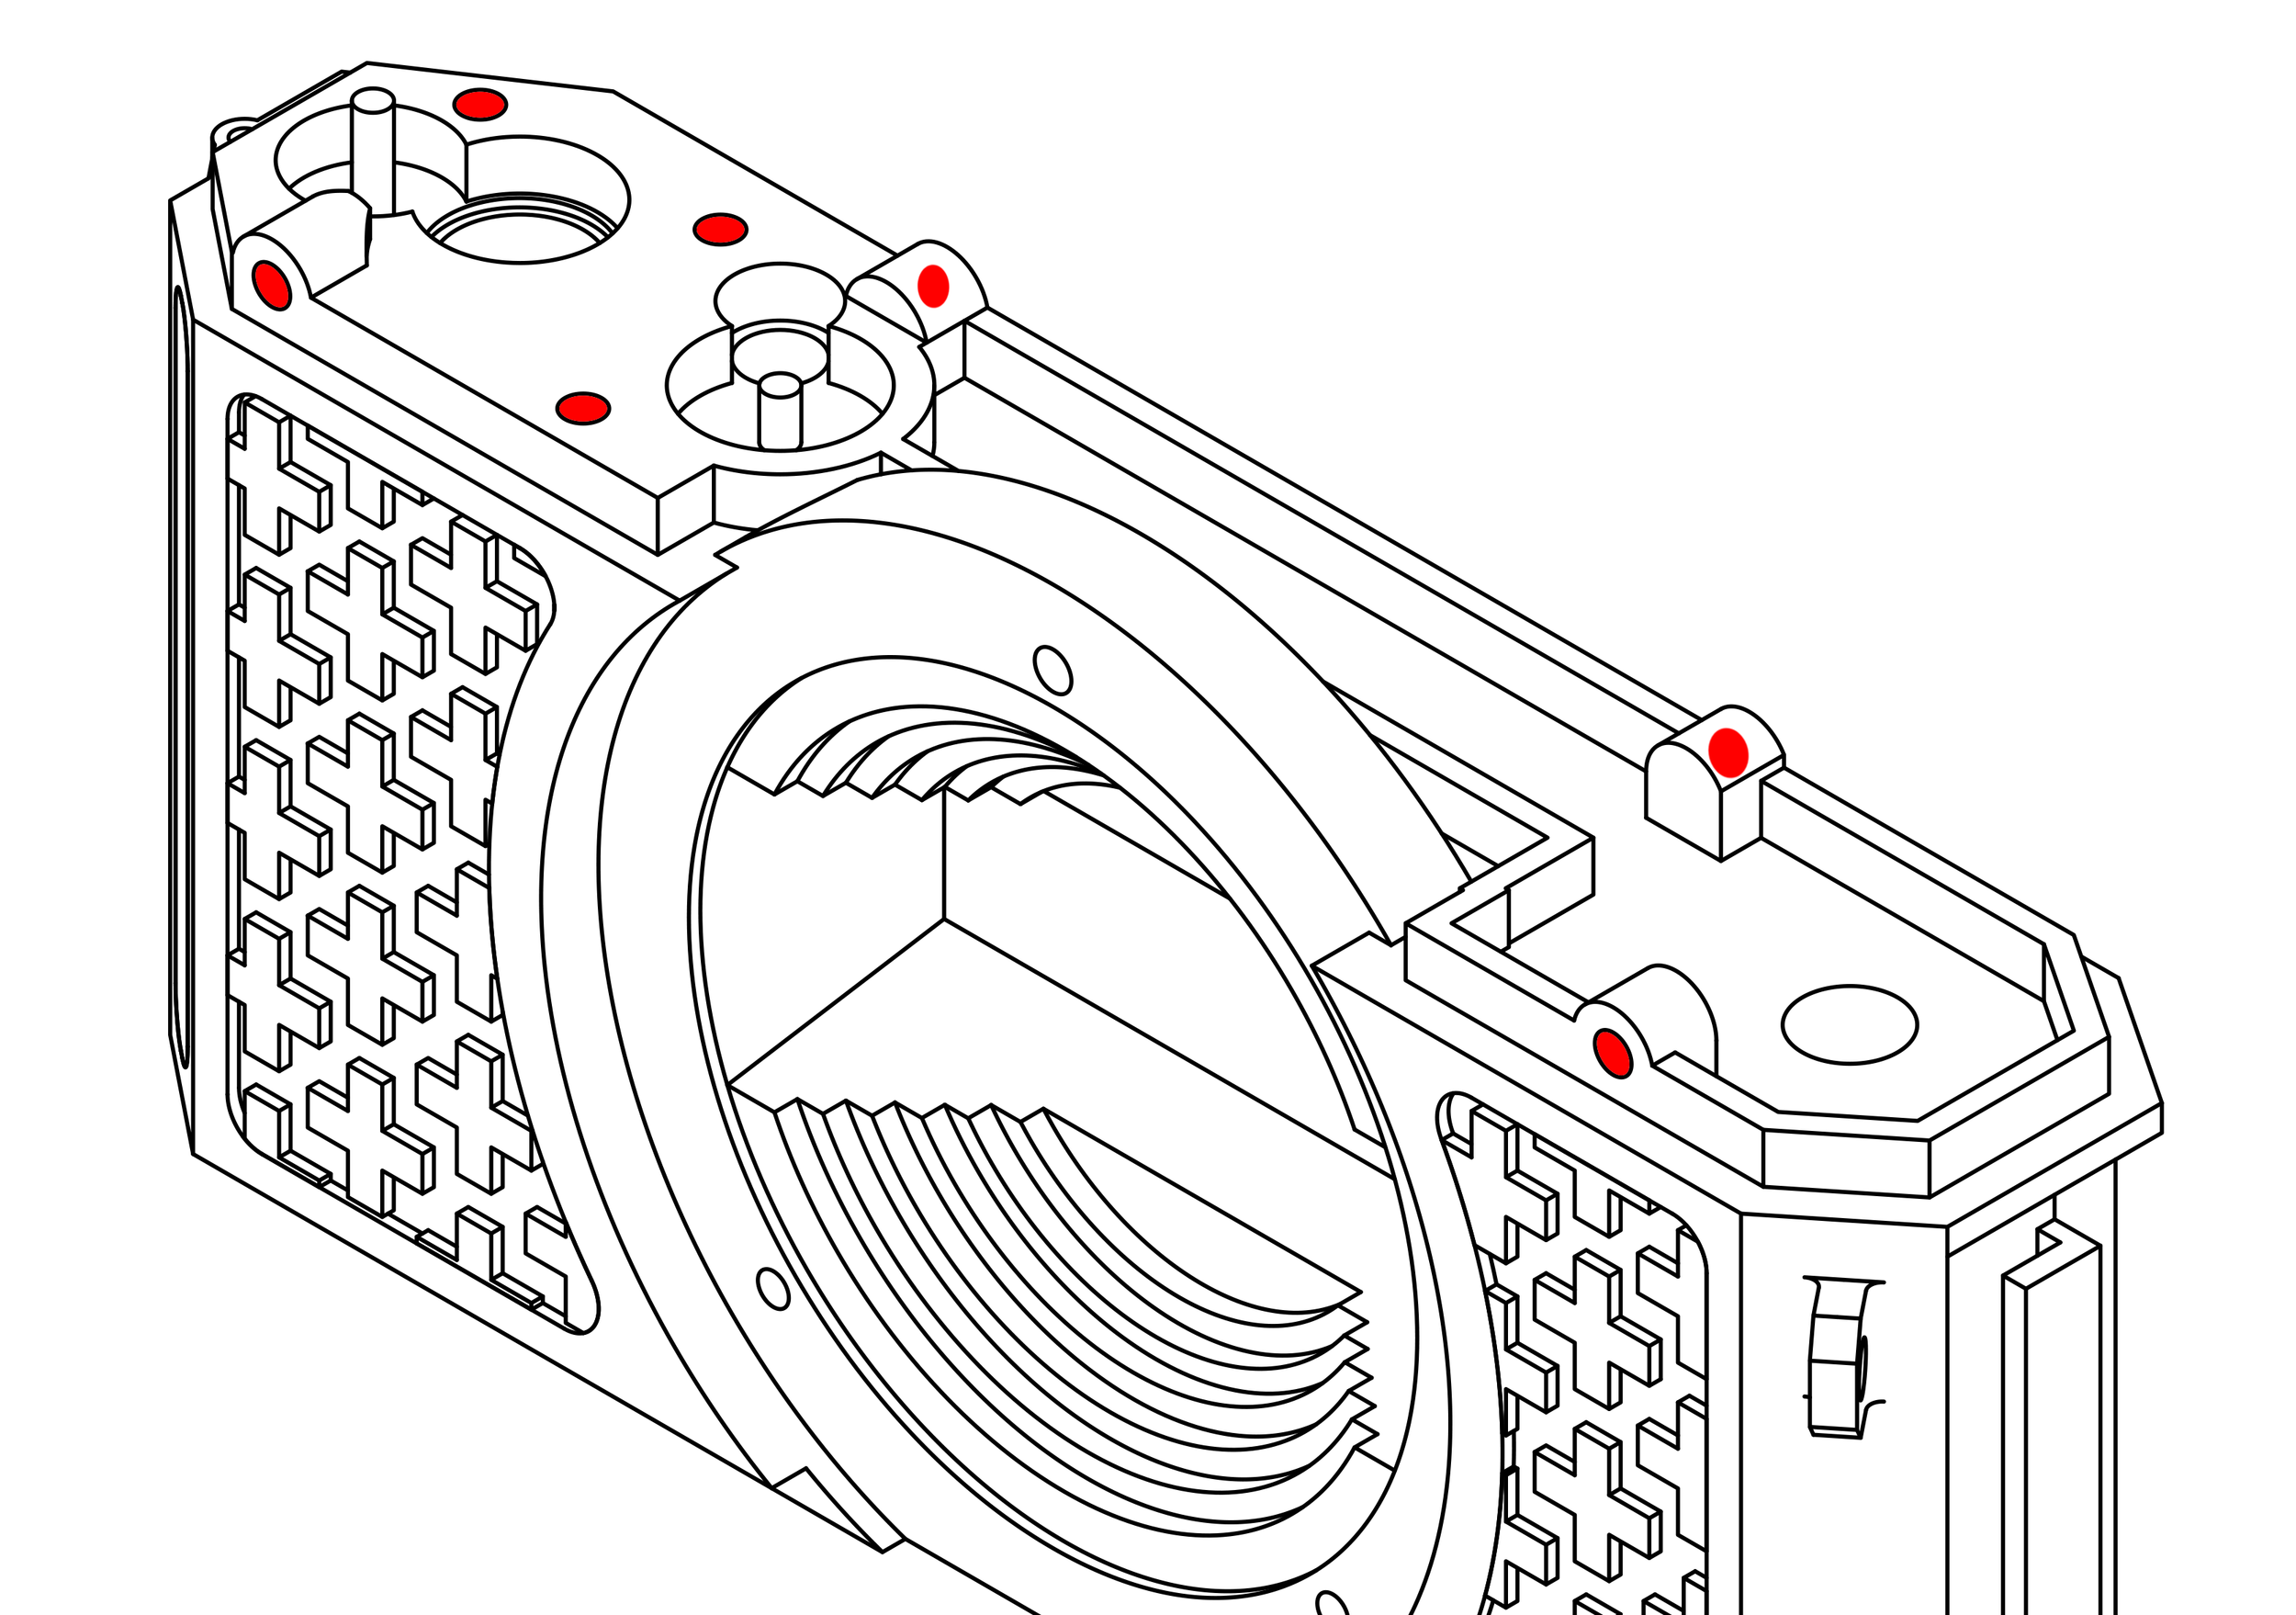 Step 1 : Heat-Set Inserts. - Step 1 : Heat-Set Inserts.the camera uses two types of heat set inserts, M2 & M2.5.First start with the M2 inserts. the body has a total of 7 of them, all located on the top of the camera, three for the gear spacer and four for the top plate. The body also has two 2.5 inserts, both to hold the bottom plate. The main gear, sprocket gear 2 and rewind lever all also need M2.5 inserts.